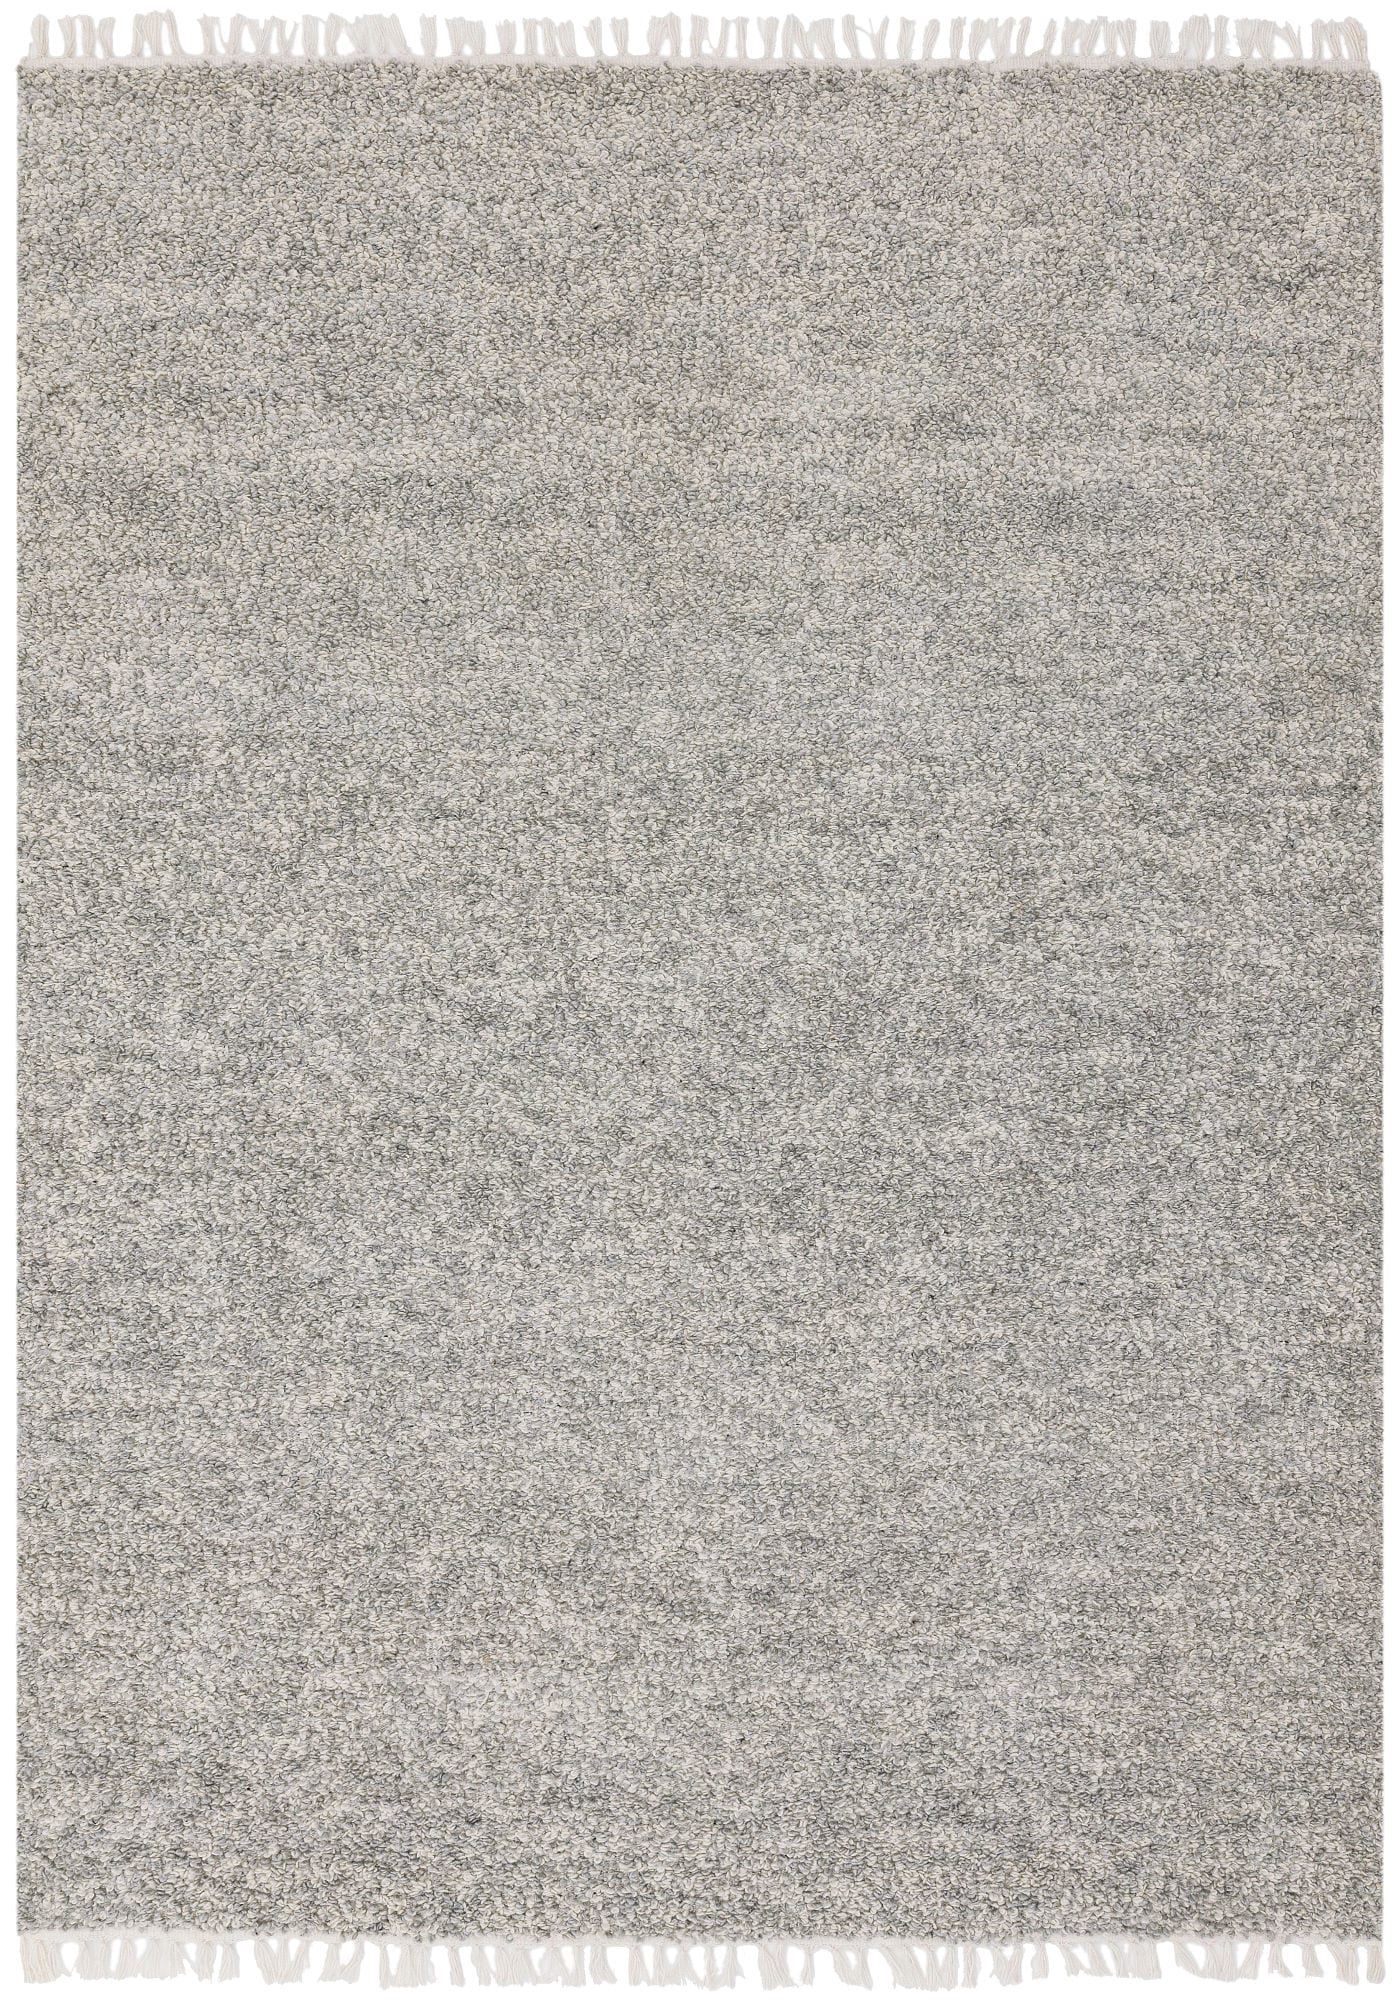 Rug By Asiatic Carpets Colour Silver